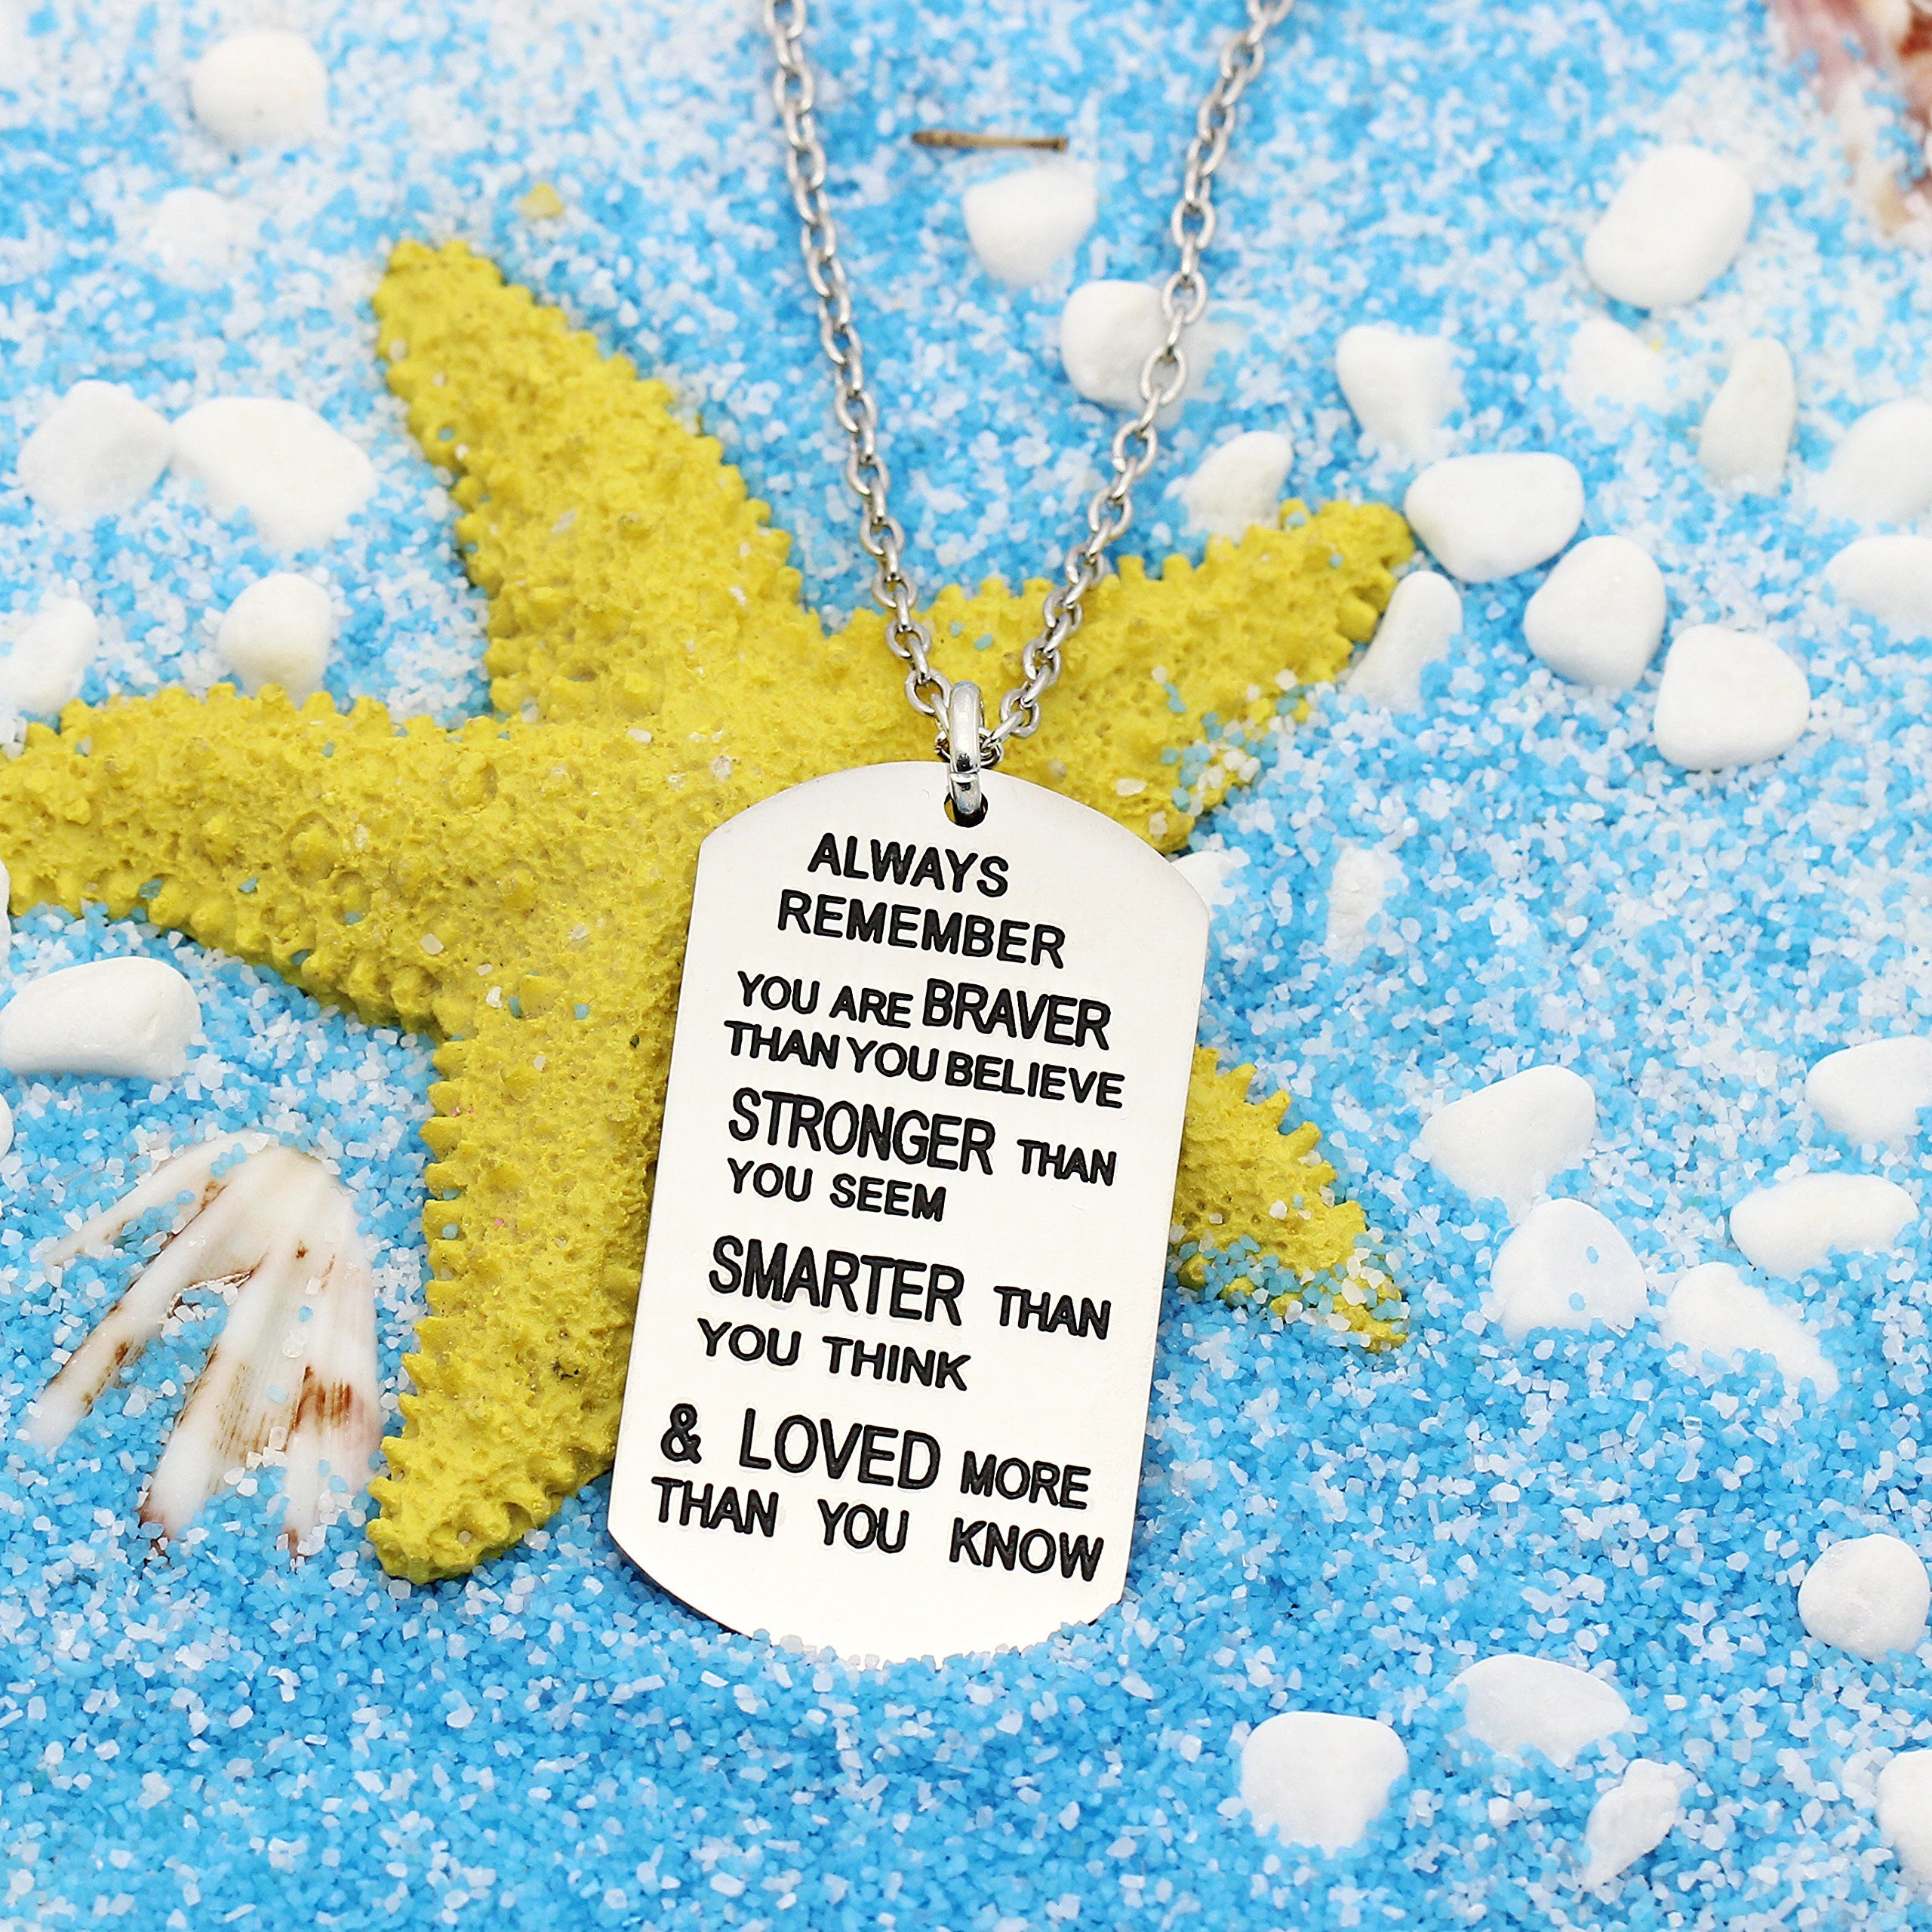 Remember You Are Braver//Stronger//Smarter Than Think Pendant Necklace Family Gift